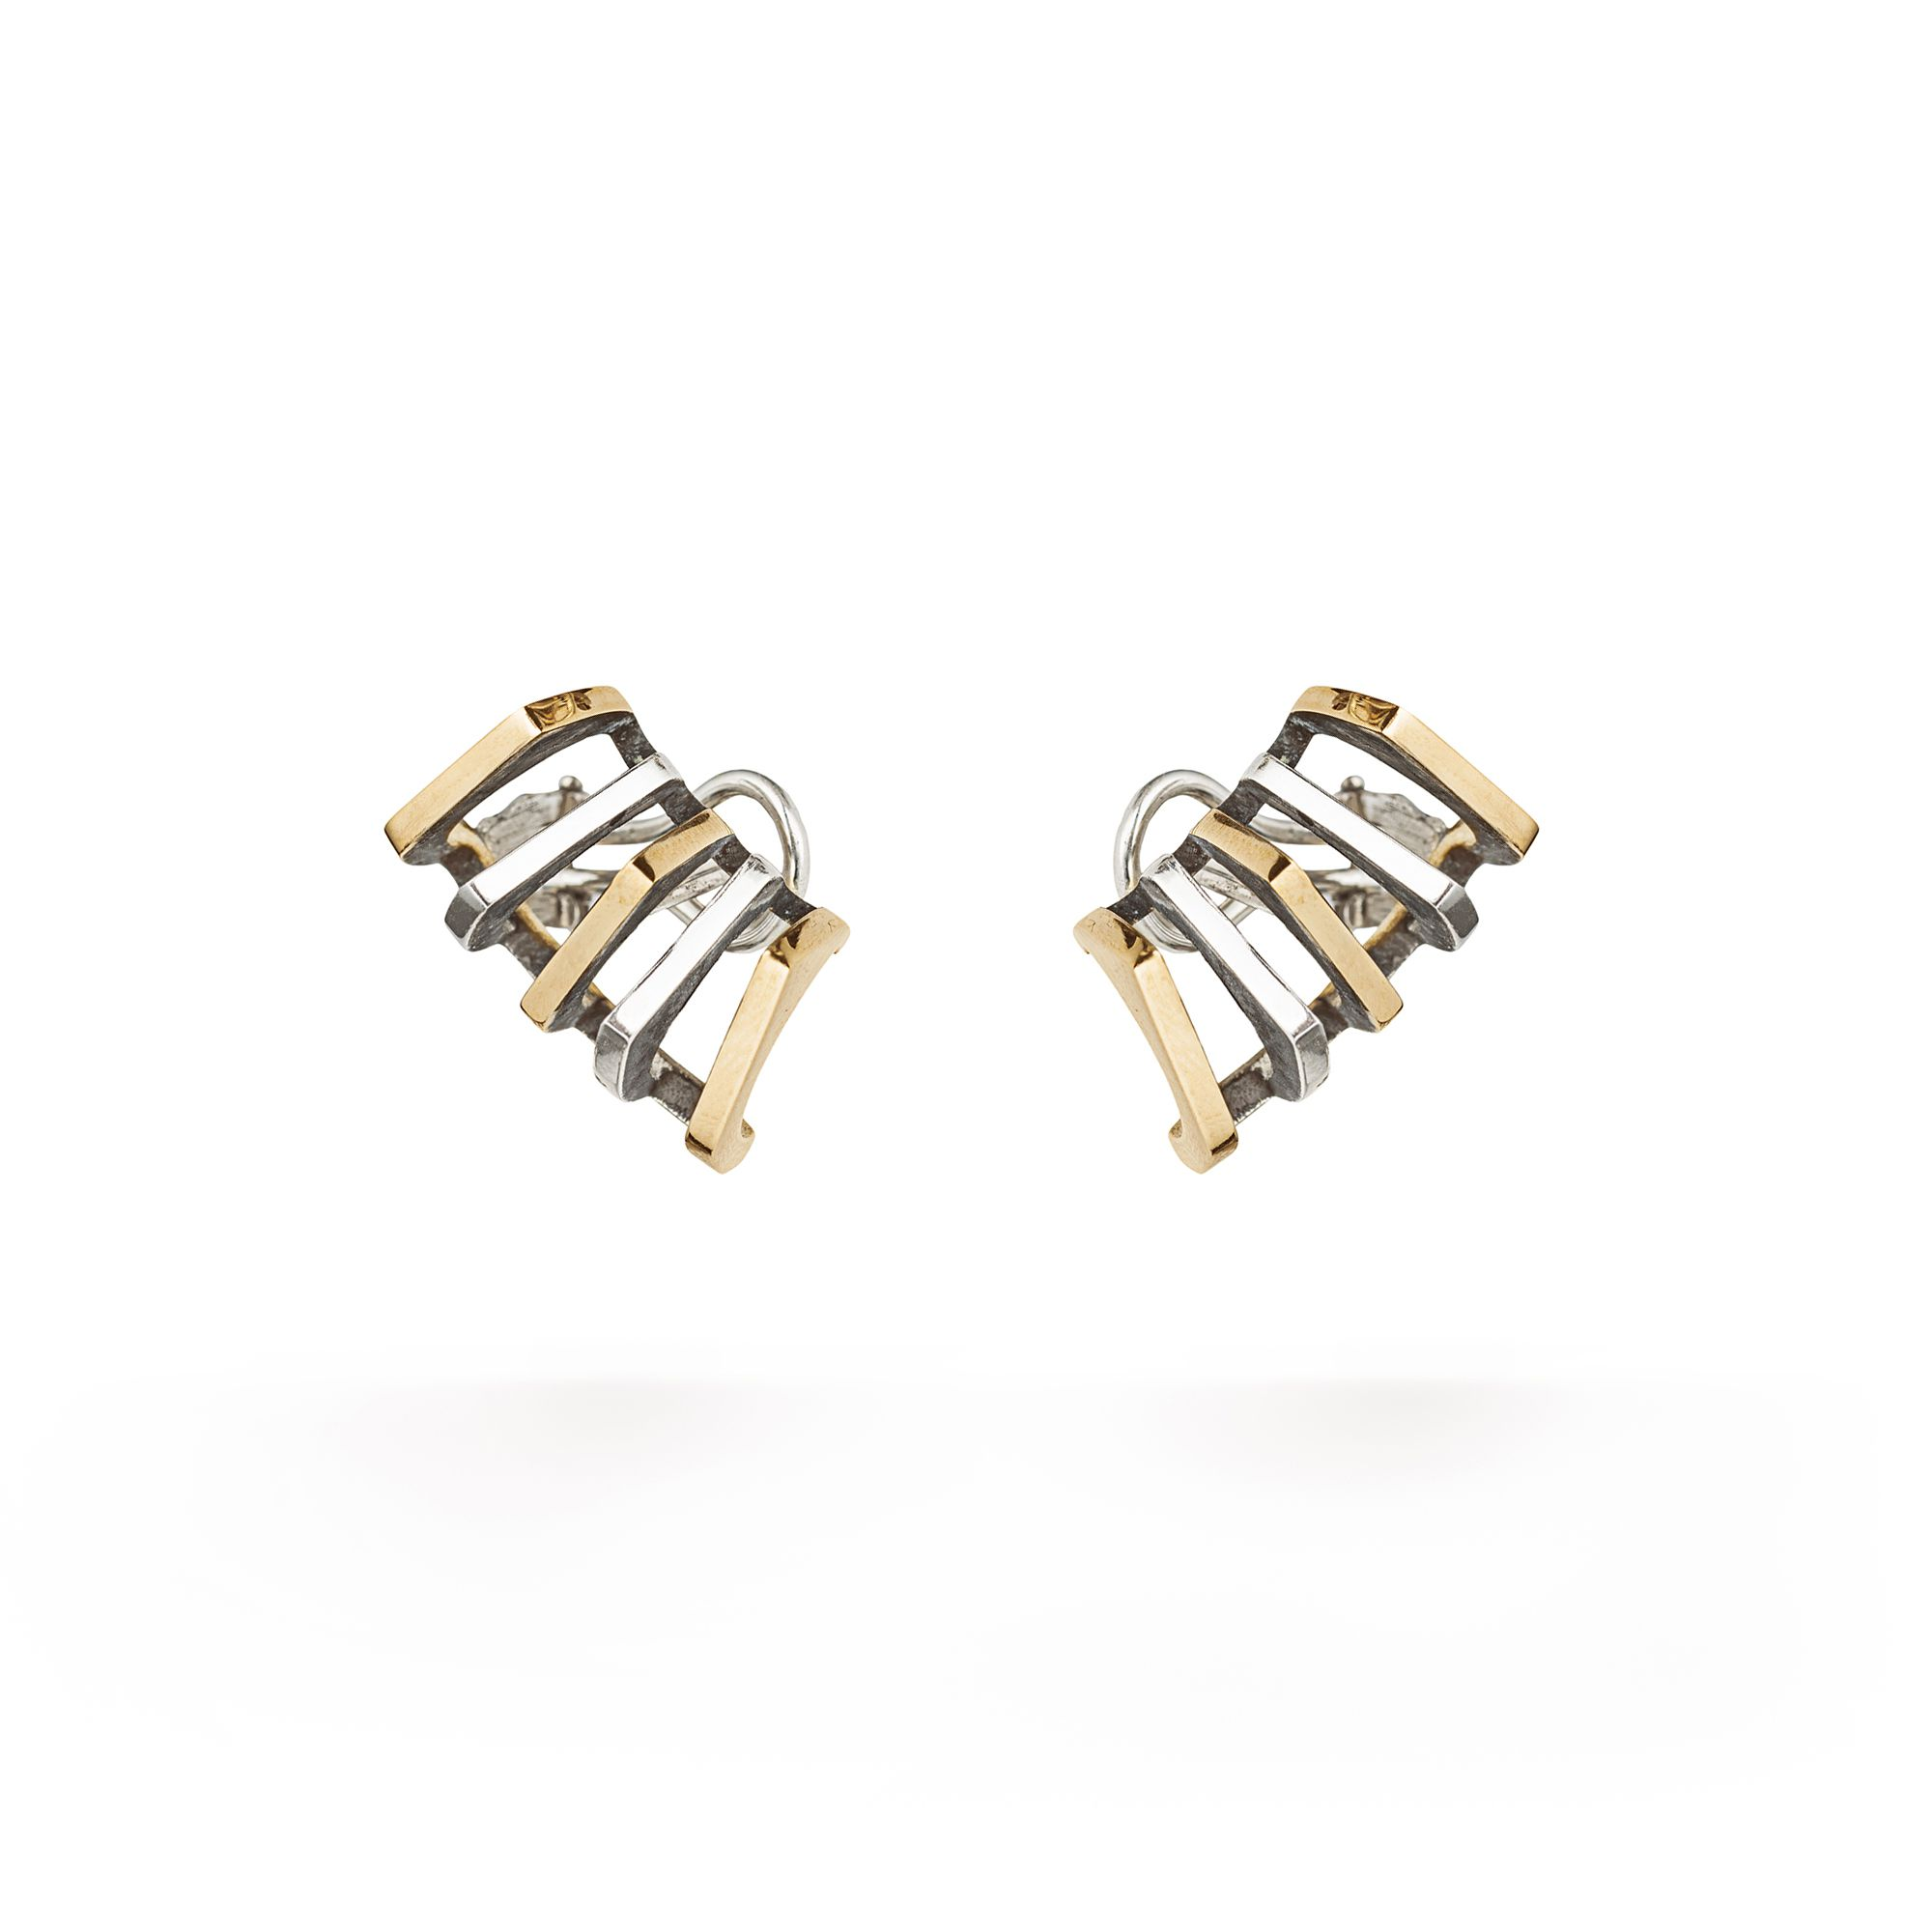 'Congiunzioni' 5 element earrings bronze based Earrings in 925 silver and bronze